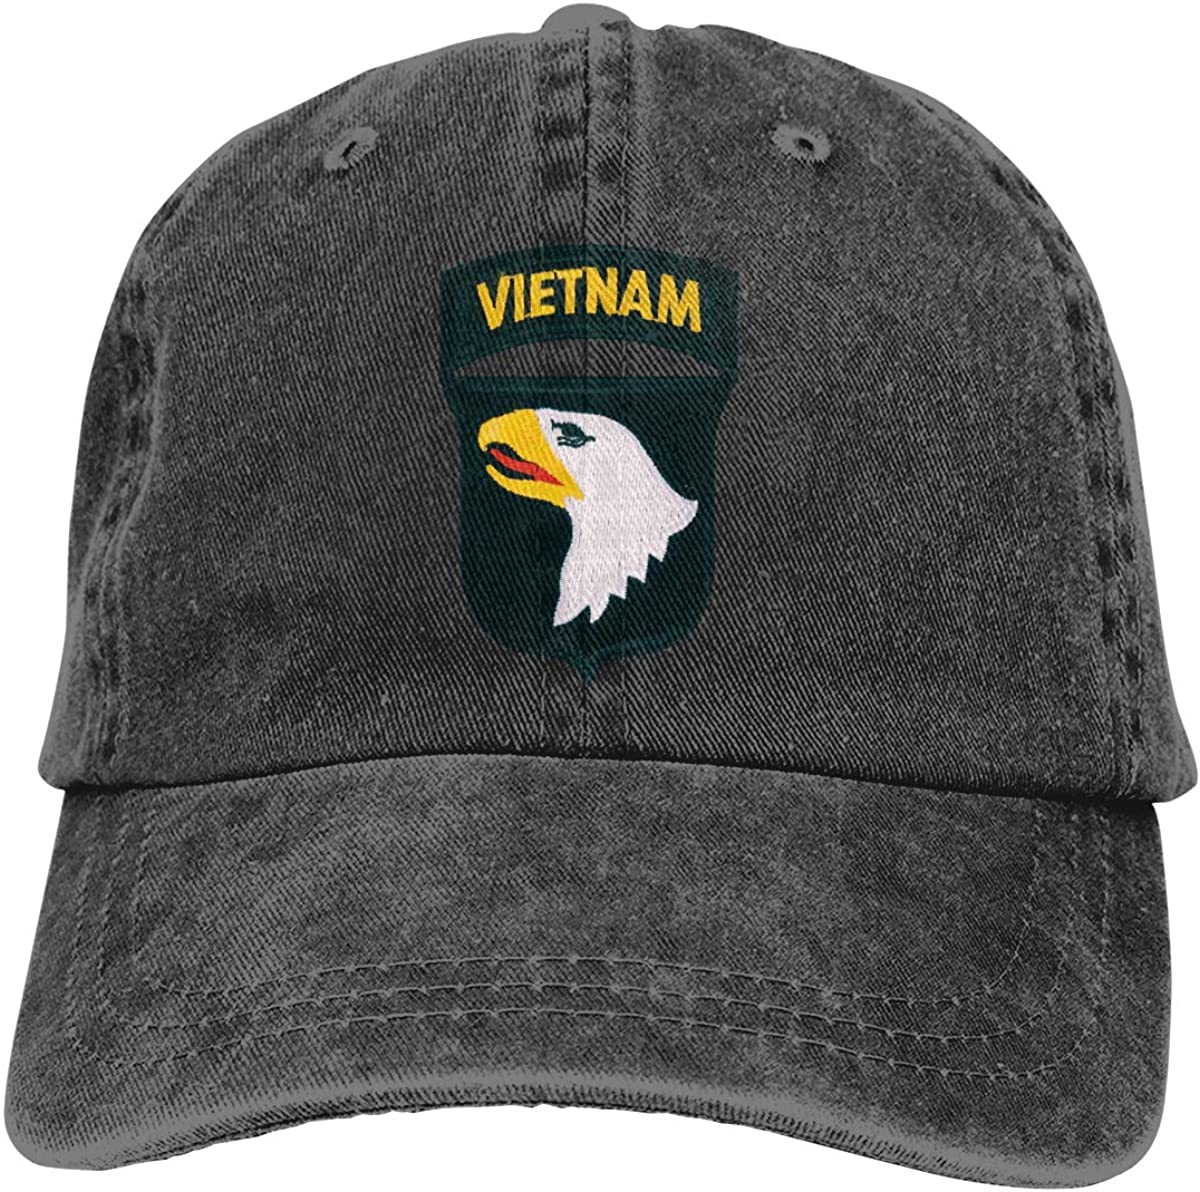 KERLANDER 101ST Airborne Division Vietnam Patch Embroidery Adjustable Washed Twill Baseball Cap Dad Hat